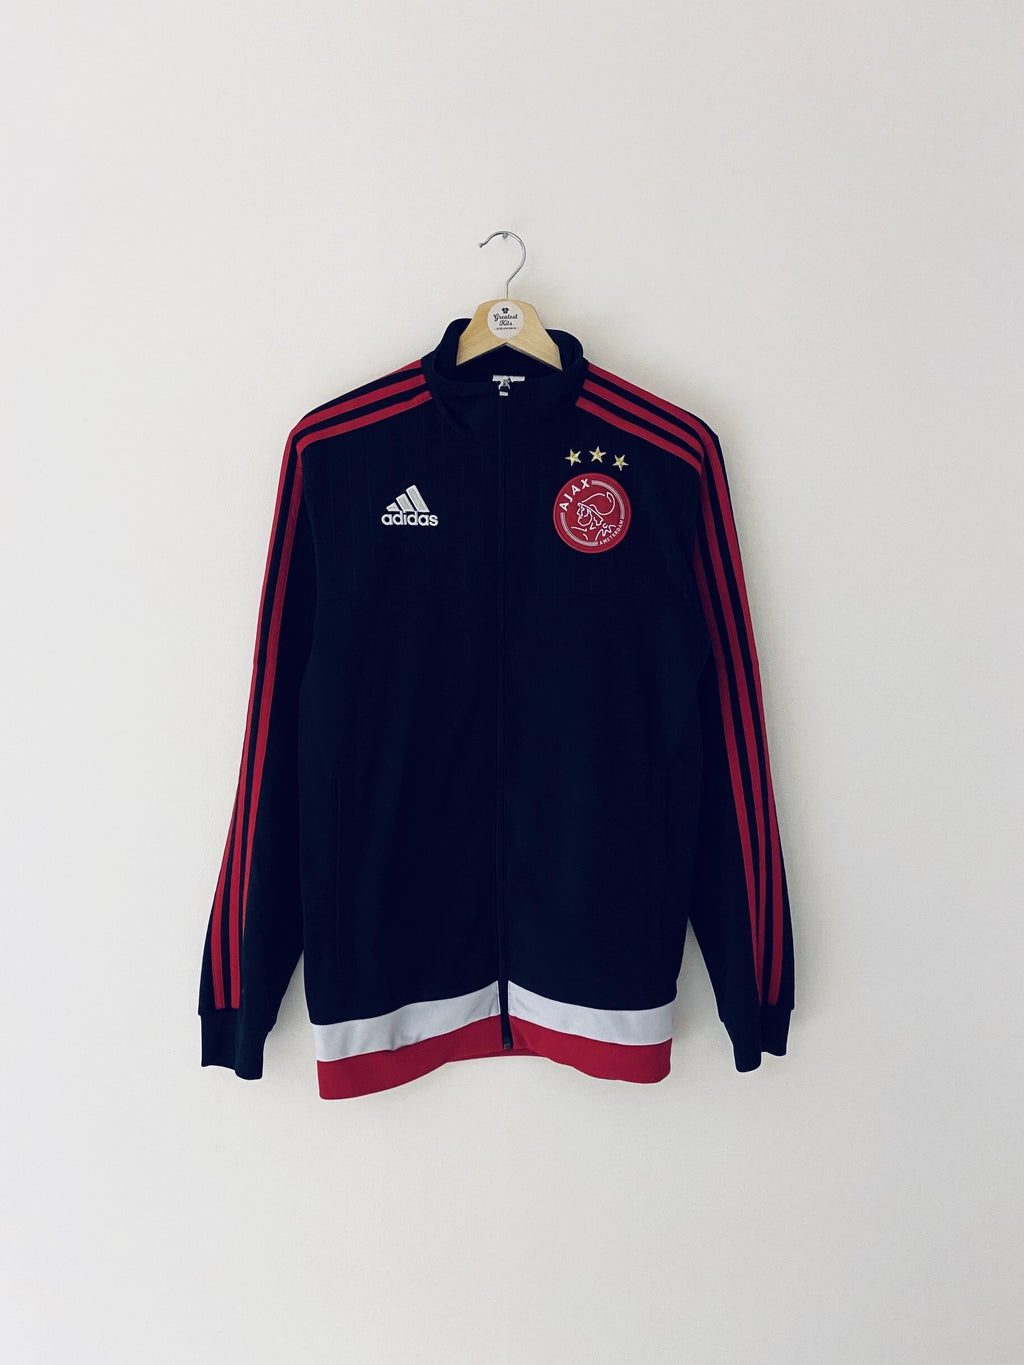 2015/16 Ajax Training Jacket (S) 9/10